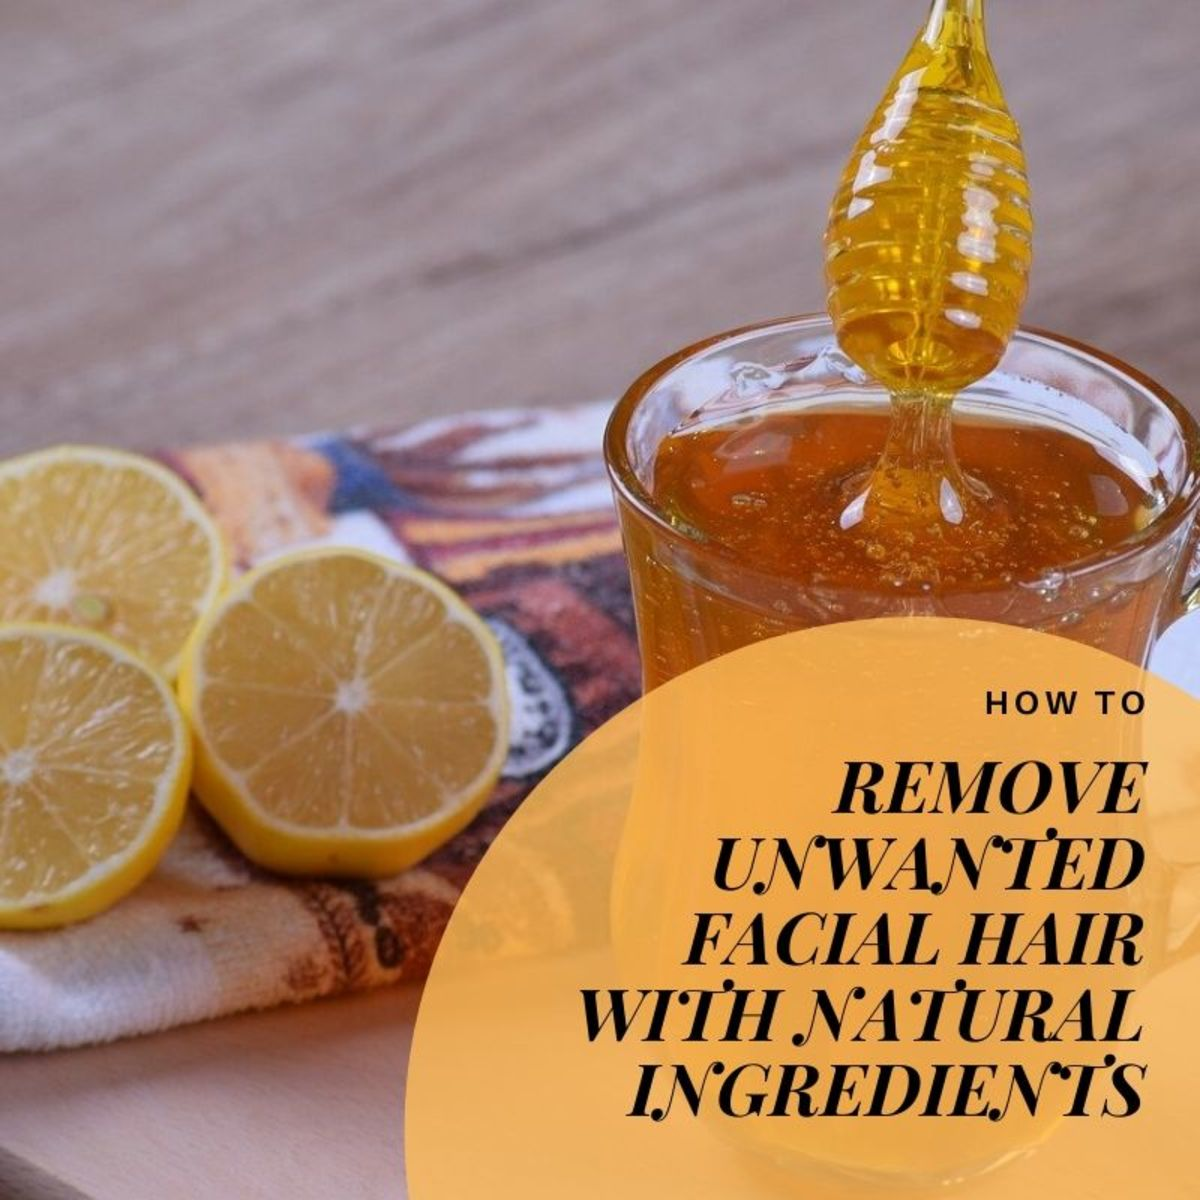 How to Remove Unwanted Chin and Facial Hair With Natural Remedies